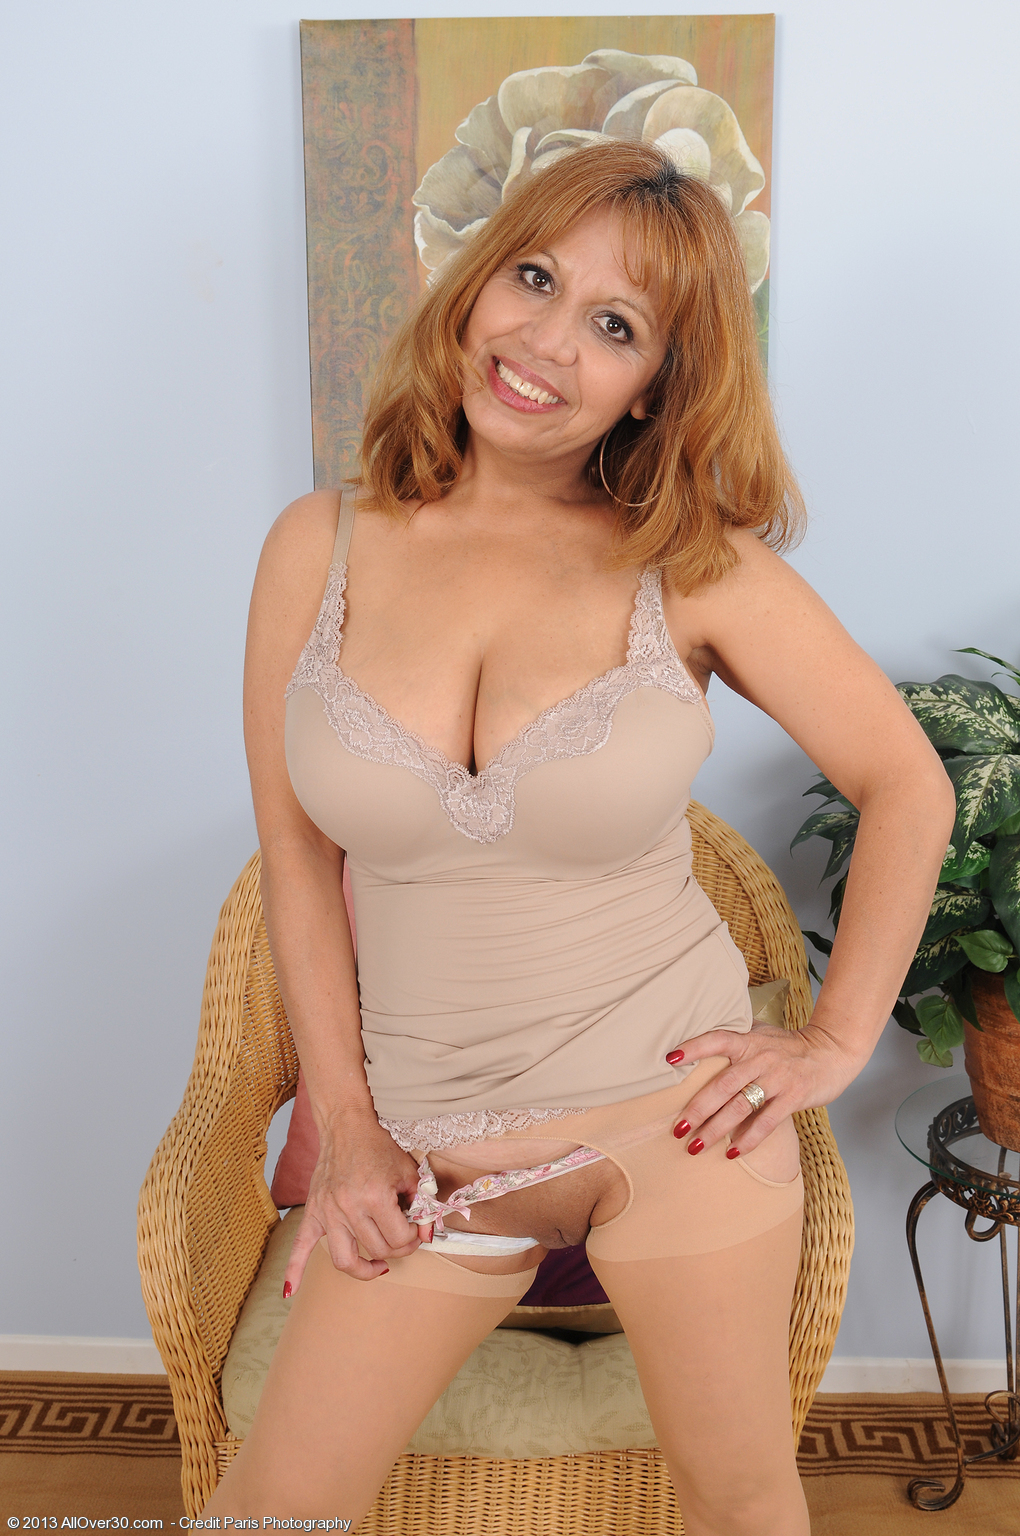 mature latina marissa - adult images